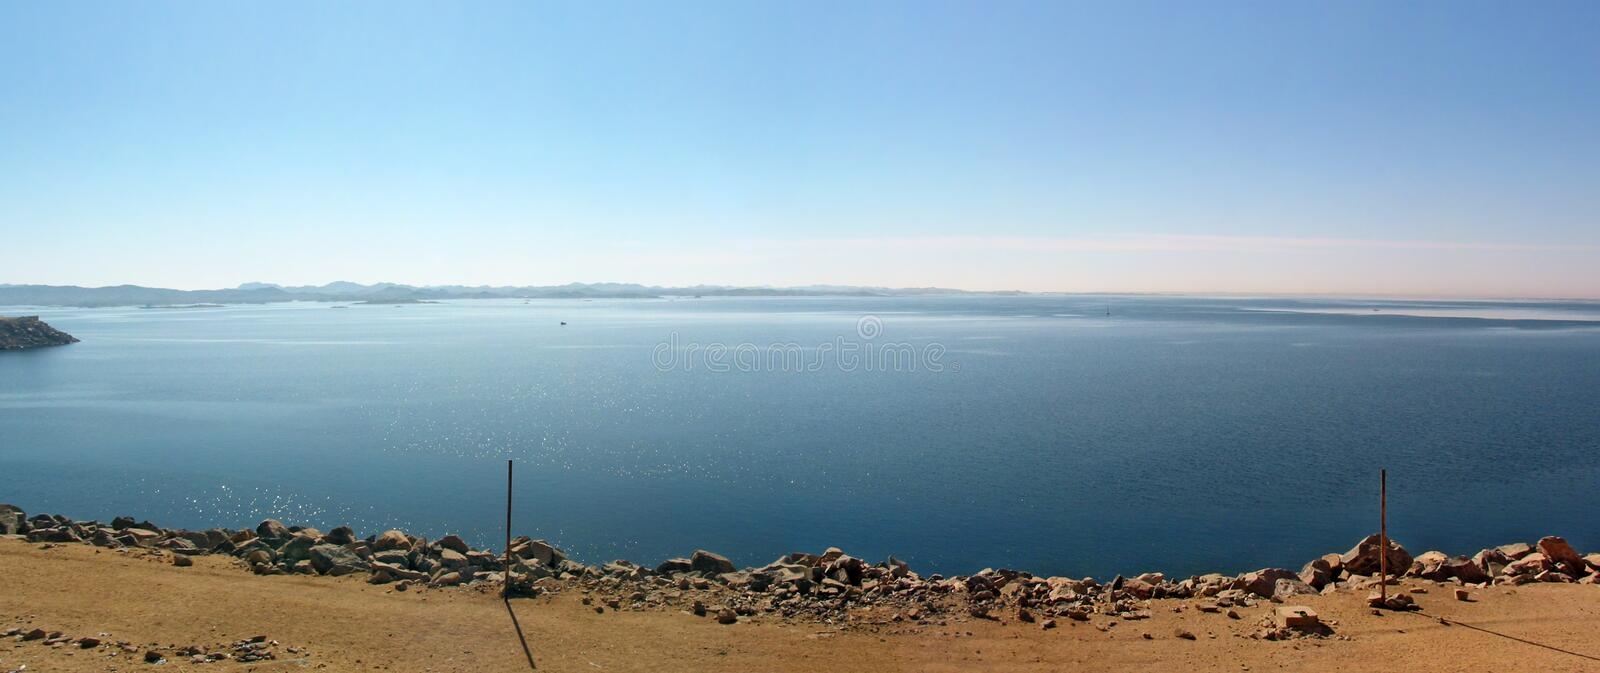 View across the lake Nasser royalty free stock image